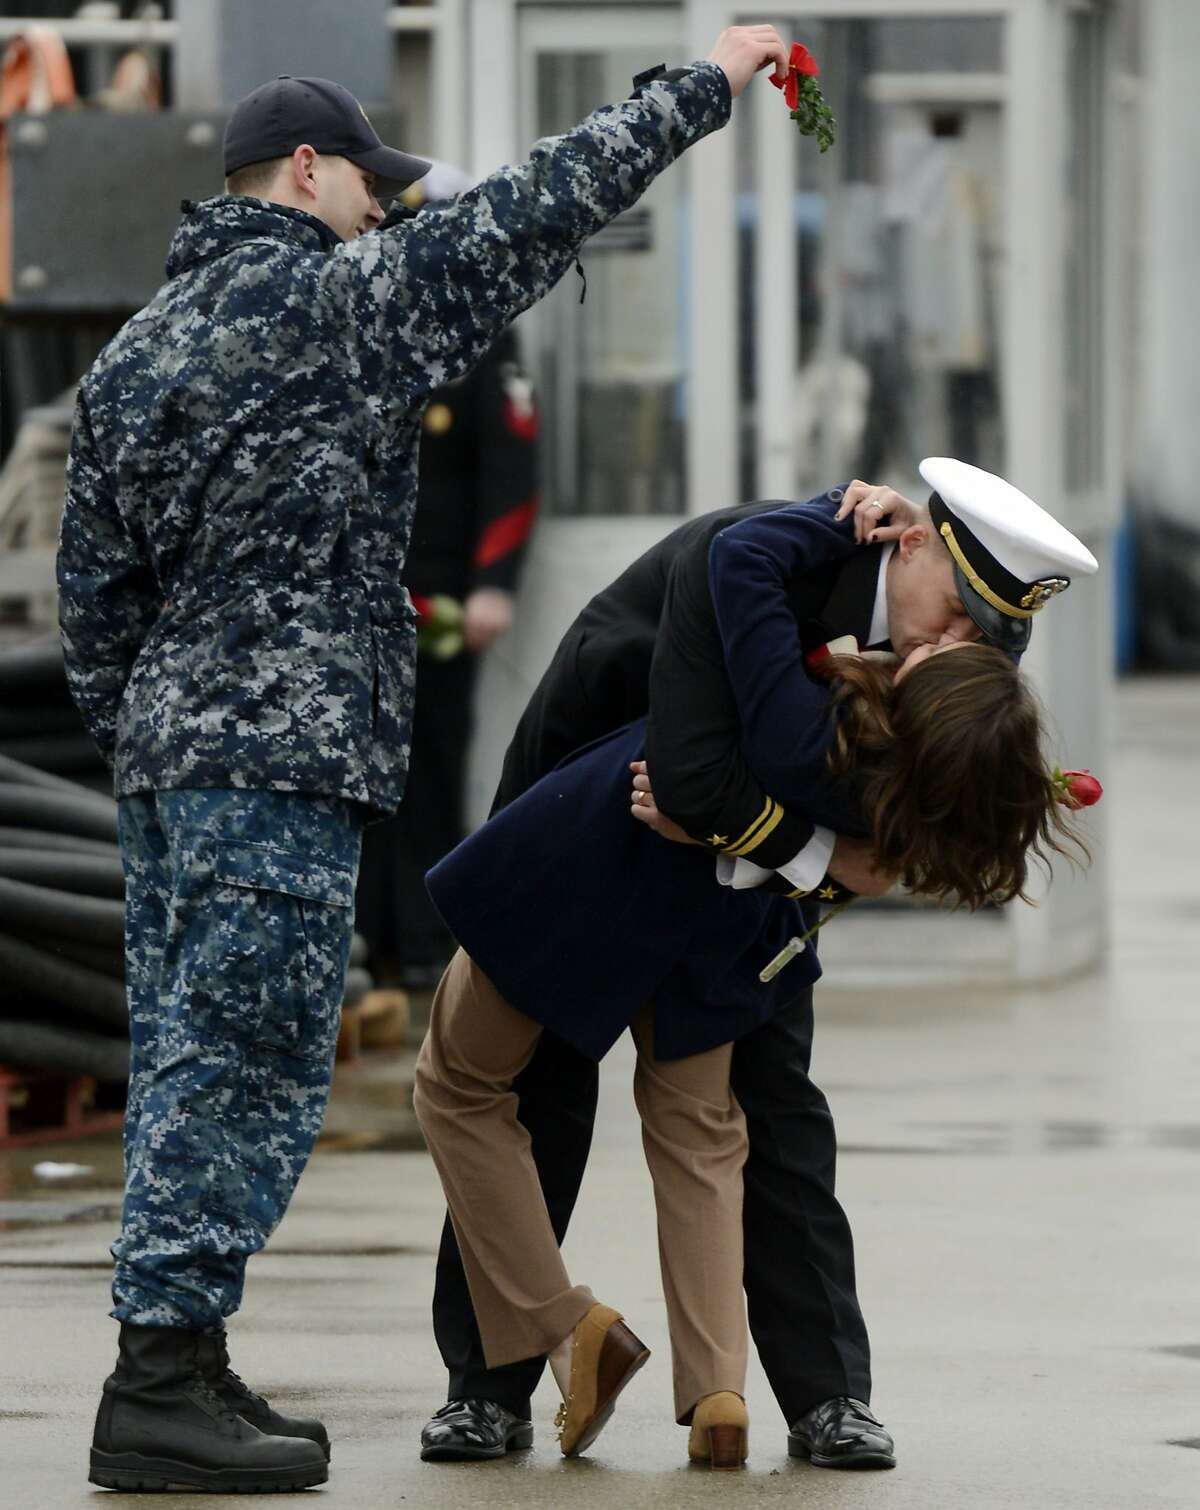 U.S. Navy Lt. jg. Stephen Bogdanowicz, left, holds a sprig of mistletoe as Ensign Morgan Oblinsky and his wife Katie enjoy the ceremonial first kiss as the navy attack submarine USS Hartford returns to the U.S. Navy Submarine Base in Groton, Conn., Friday, Dec. 18, 2015, following a six-month deployment to the European Command Areas of Responsibility. Hartford, with a crew of around 130 officers and enlisted personnel, made port calls in Faslane, Scotland and Rota, Spain during the deployment. (Sean D. Elliot/The Day via AP)